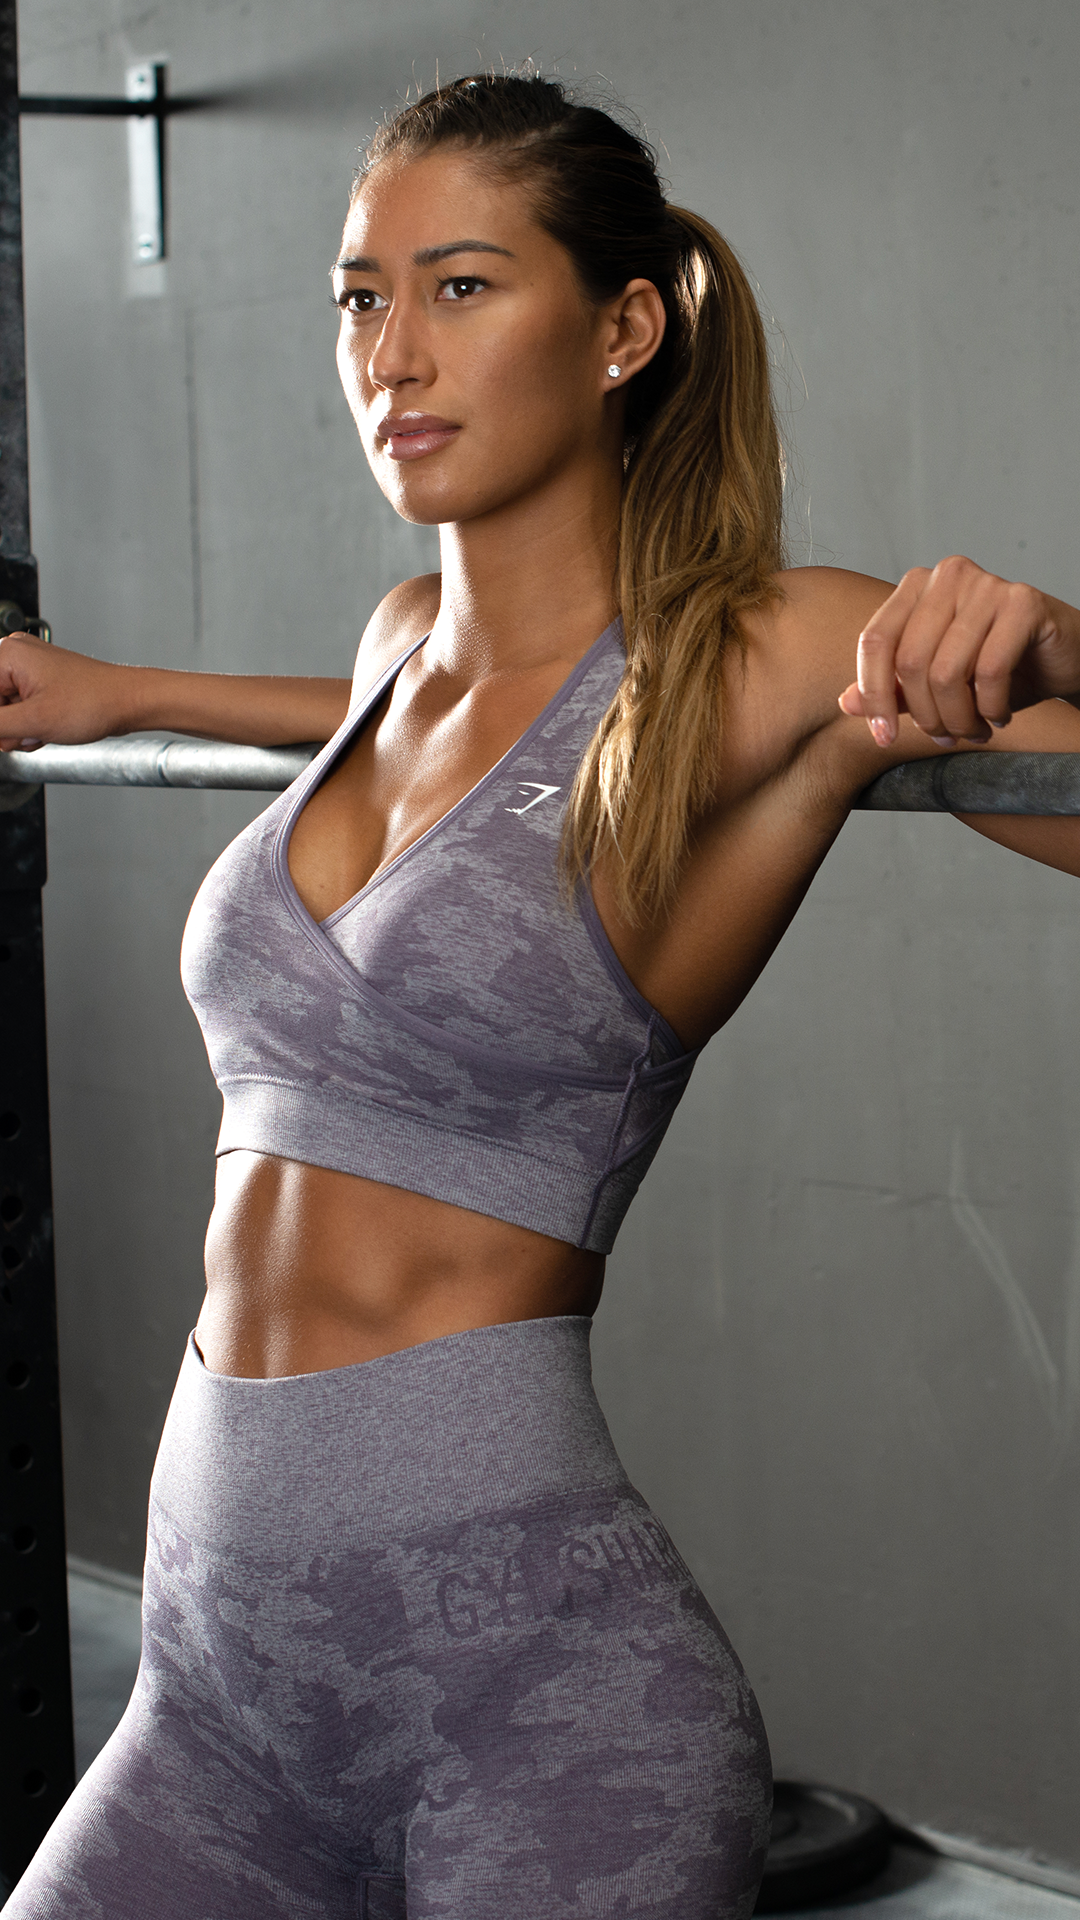 Hangin At The Bar With Karina Wearing The Camo Seamless Lavender